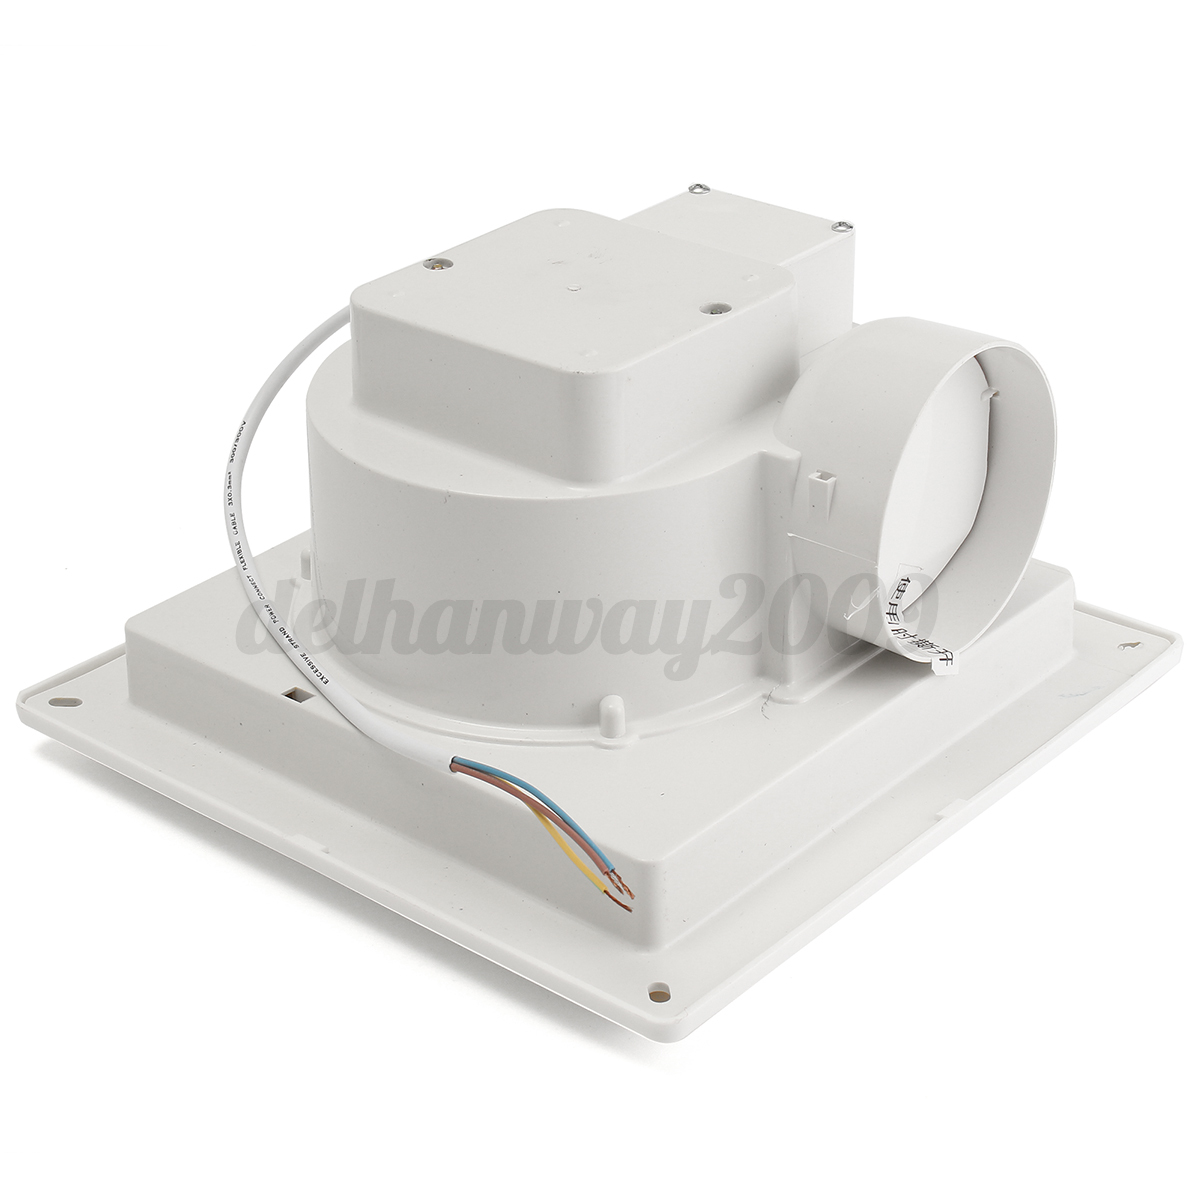 8 10 air vent exhaust fan ceiling wall mount ventilation